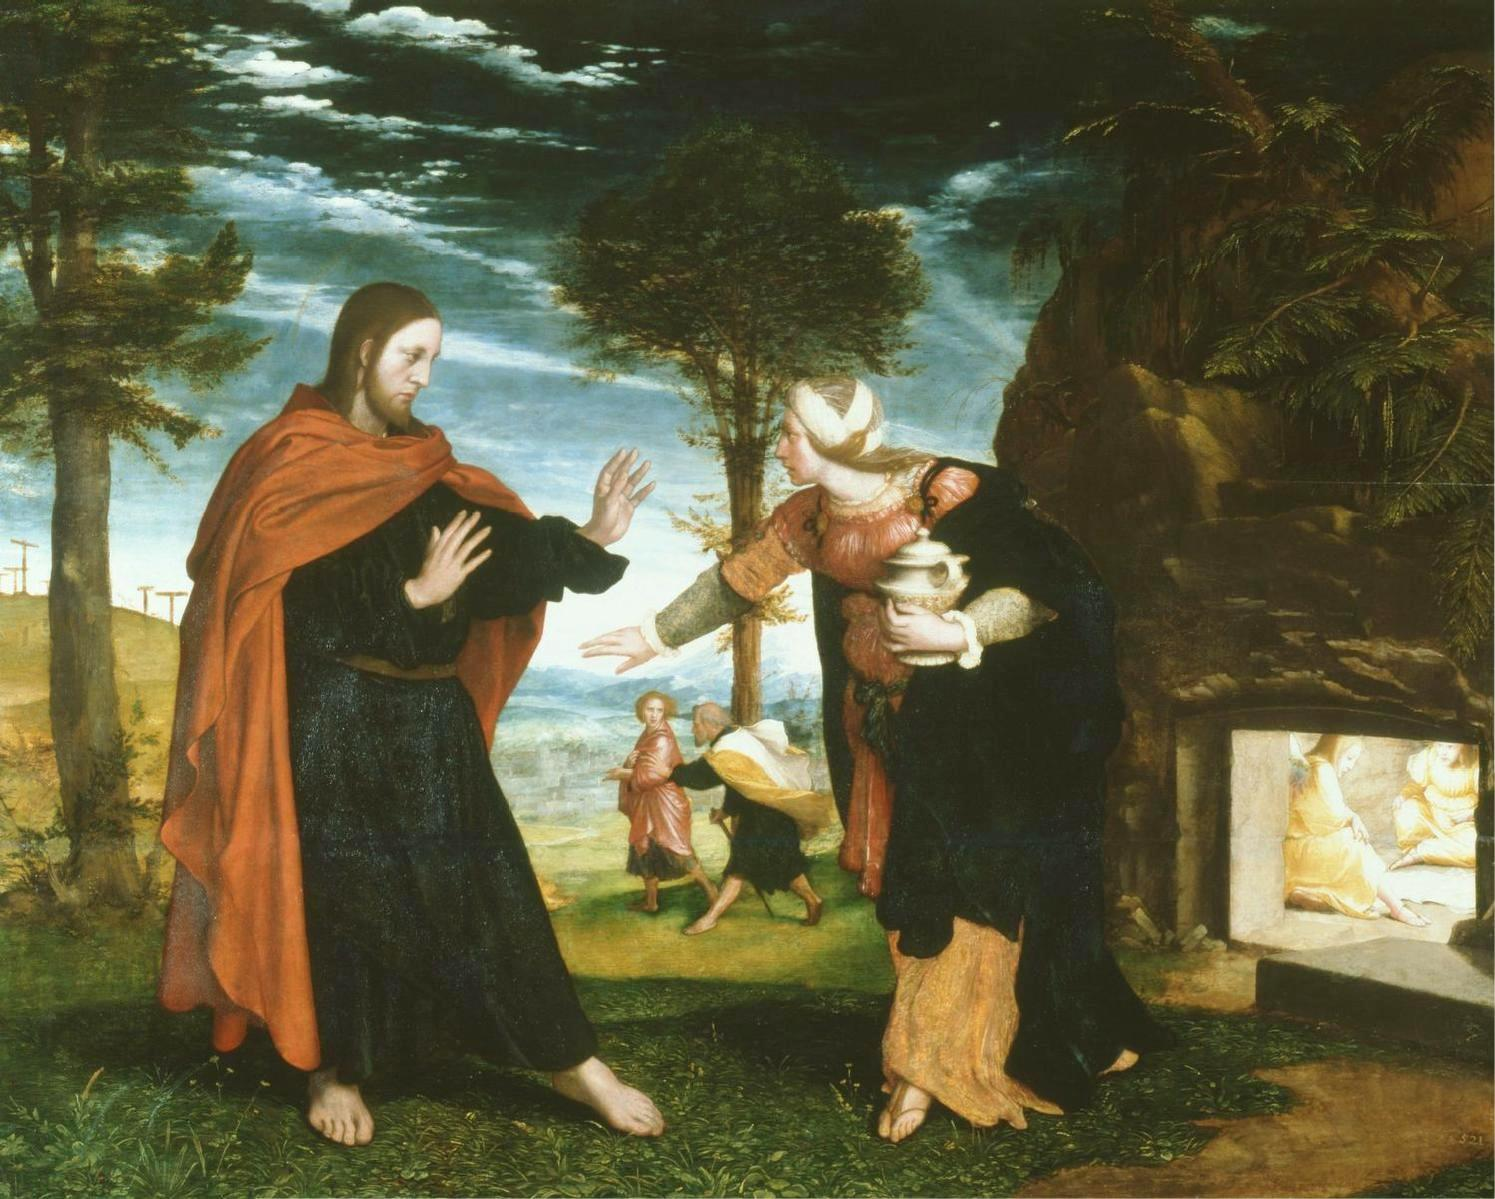 Noli me Tangere. Hans Holbein the Younger, 1524. Wikimedia Commons.